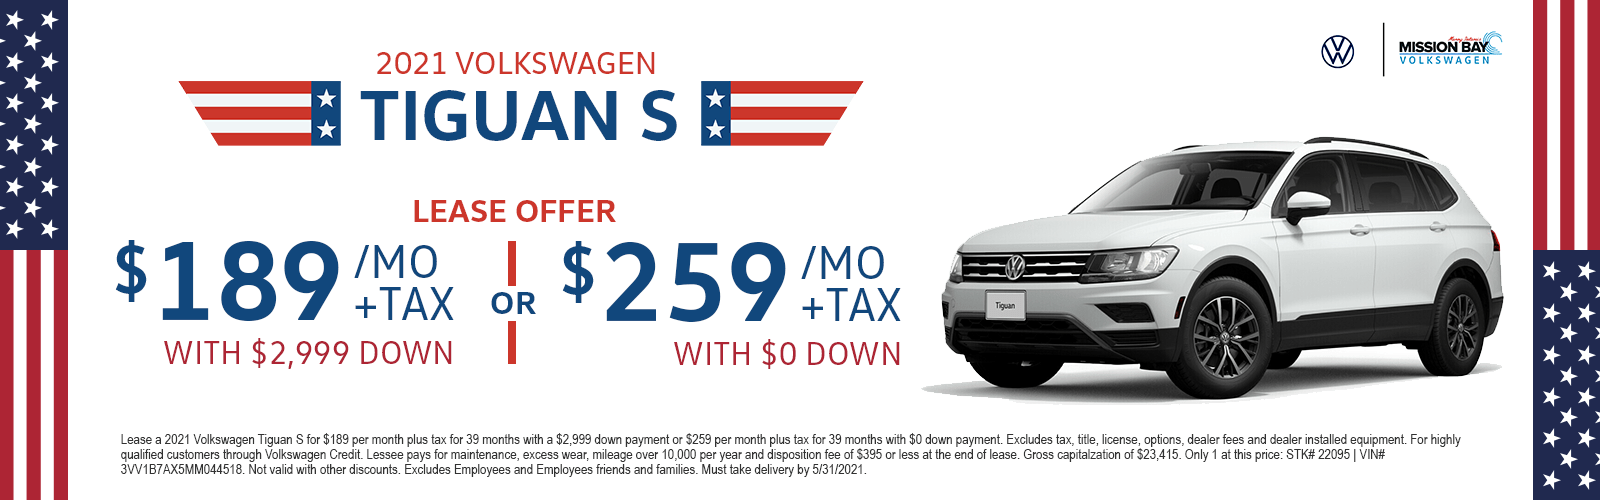 2021 Volkswagen Tiguan lease deals at San Diego VW dealership